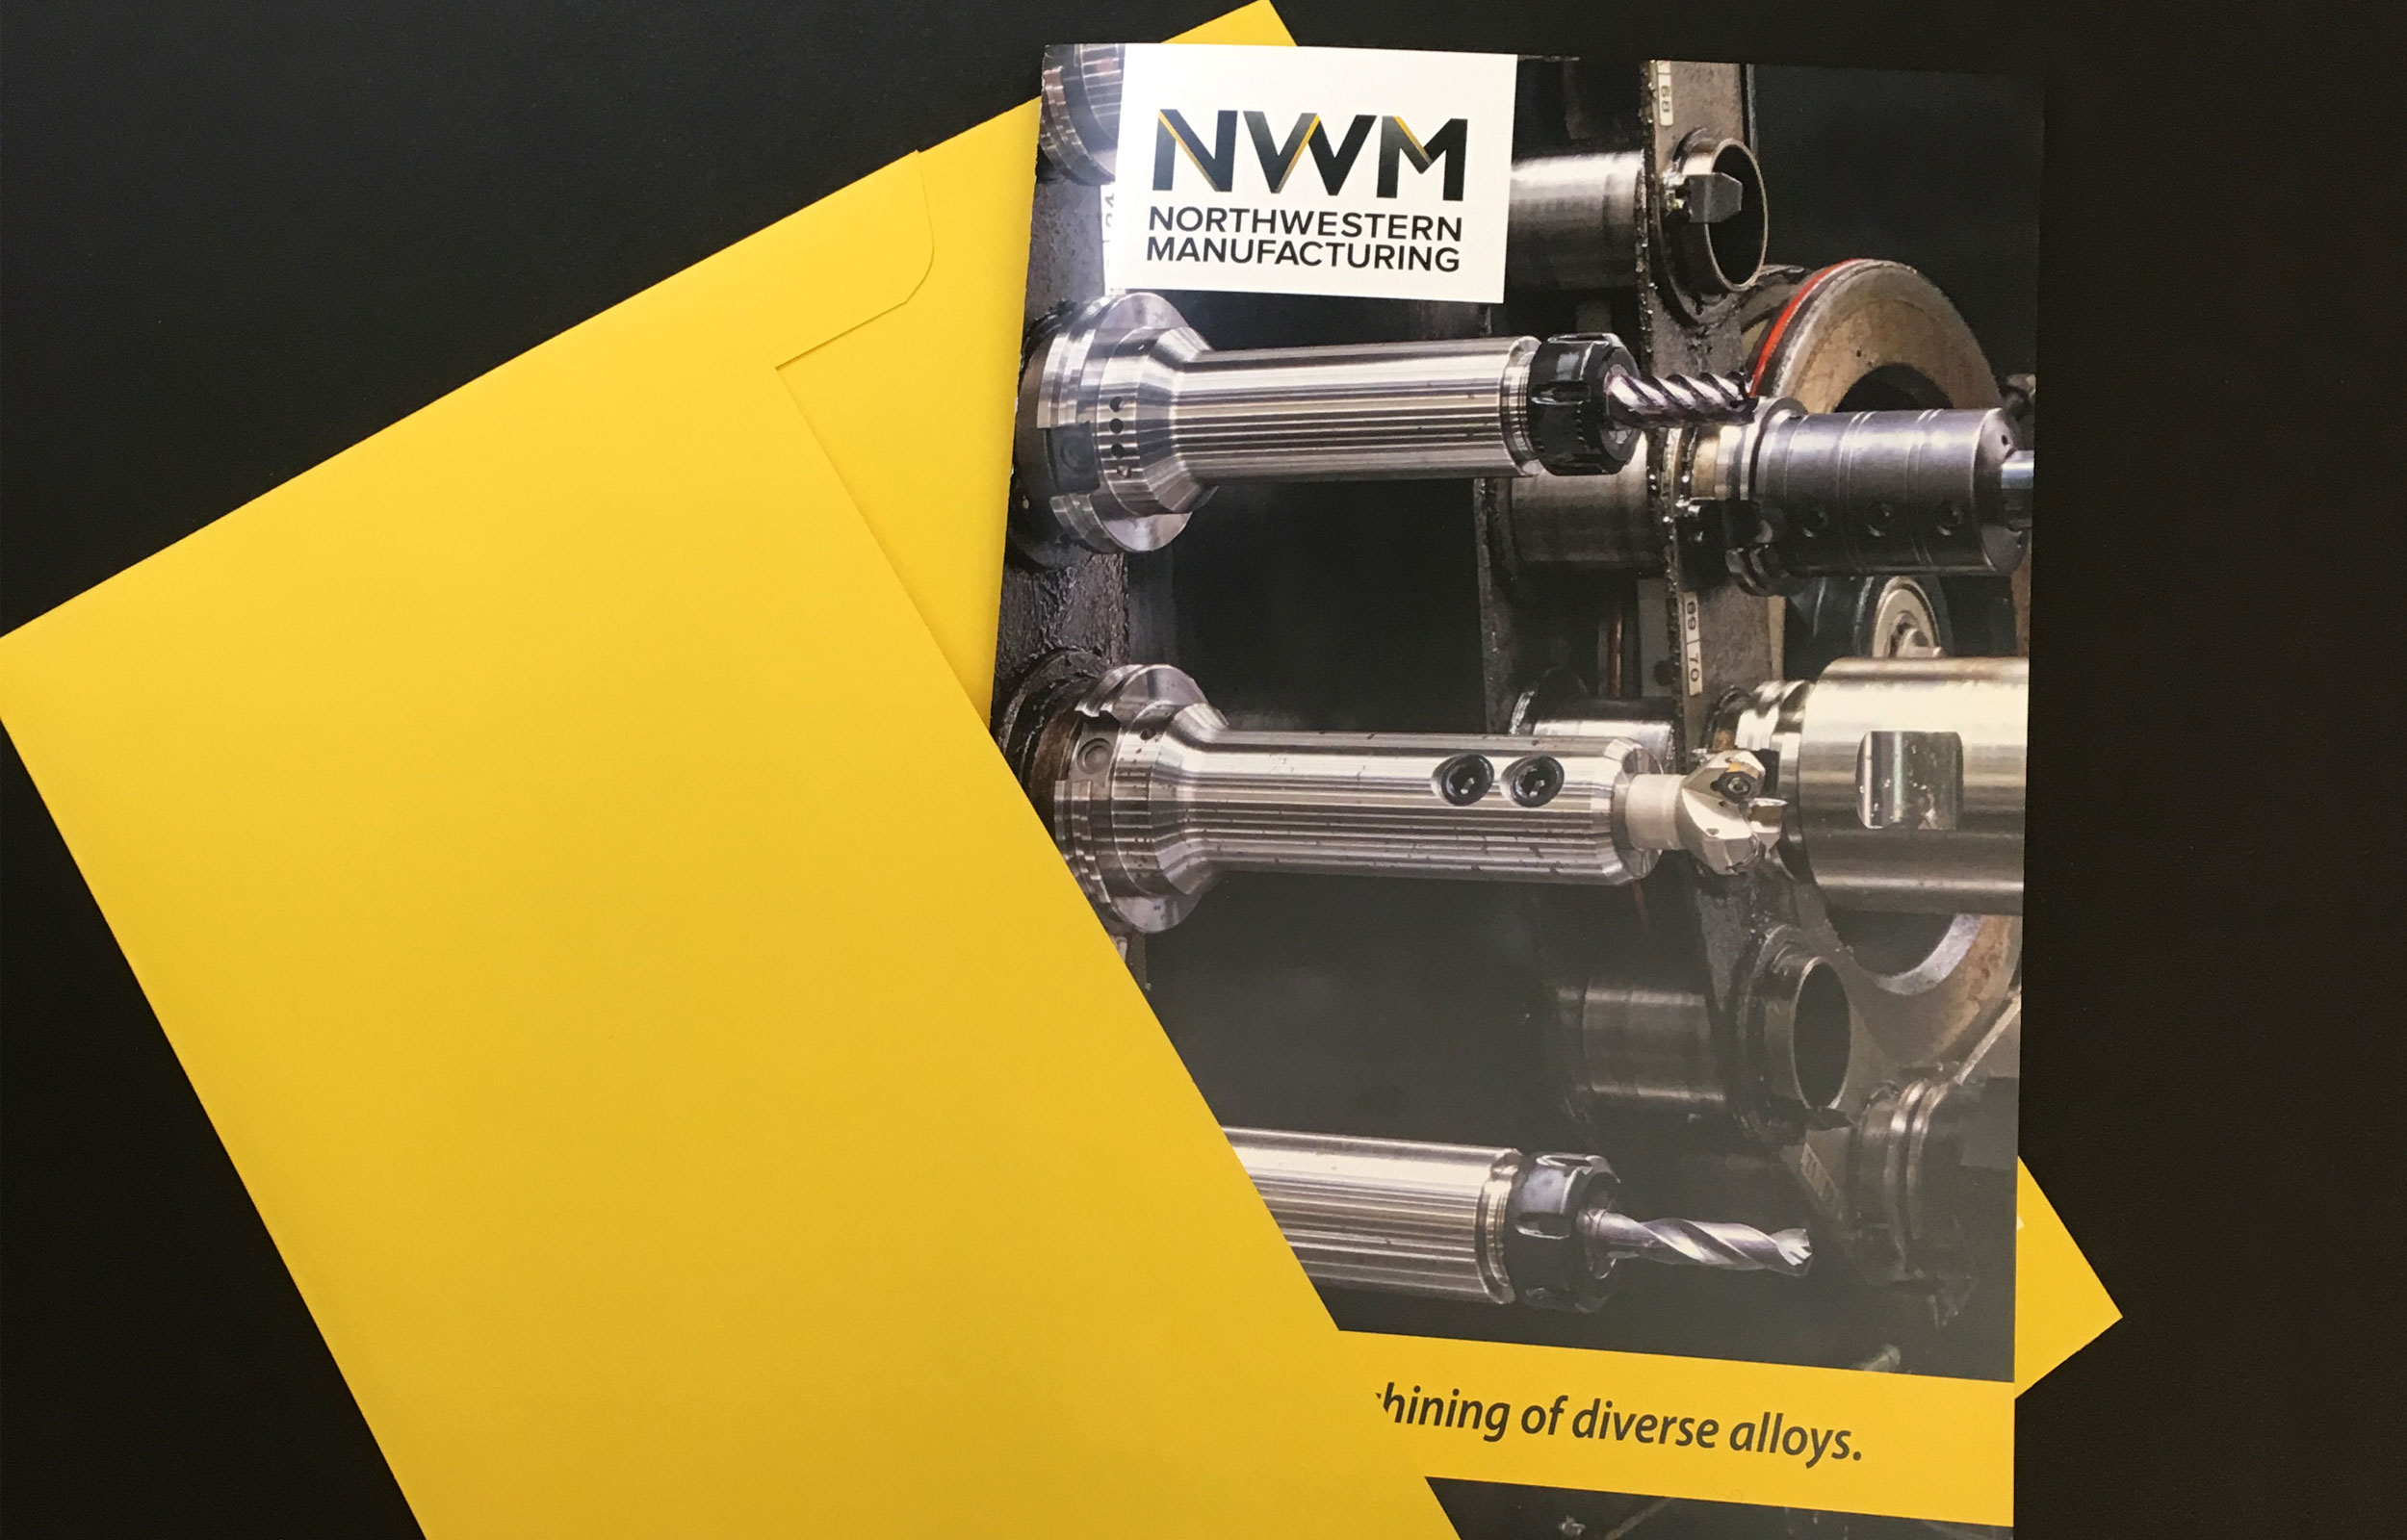 http://papaadvertising.com/wp-content/uploads/2016/09/NMW_Brochure_Cover-2.jpg